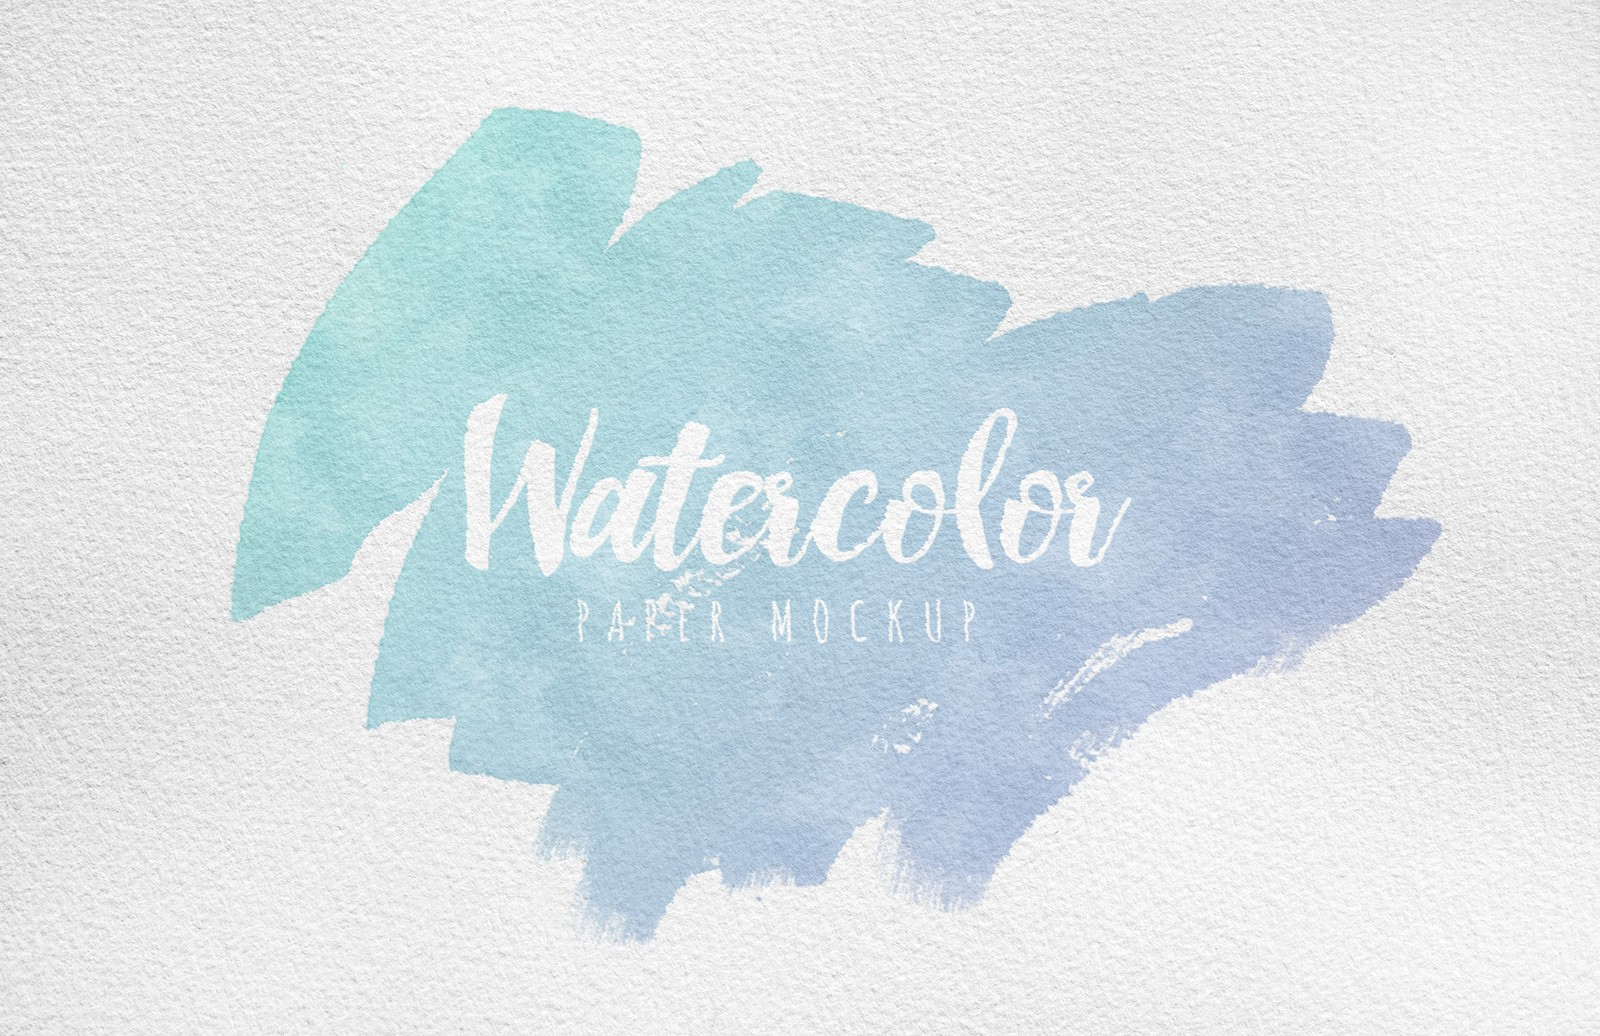 Watercolor Paper Mockup